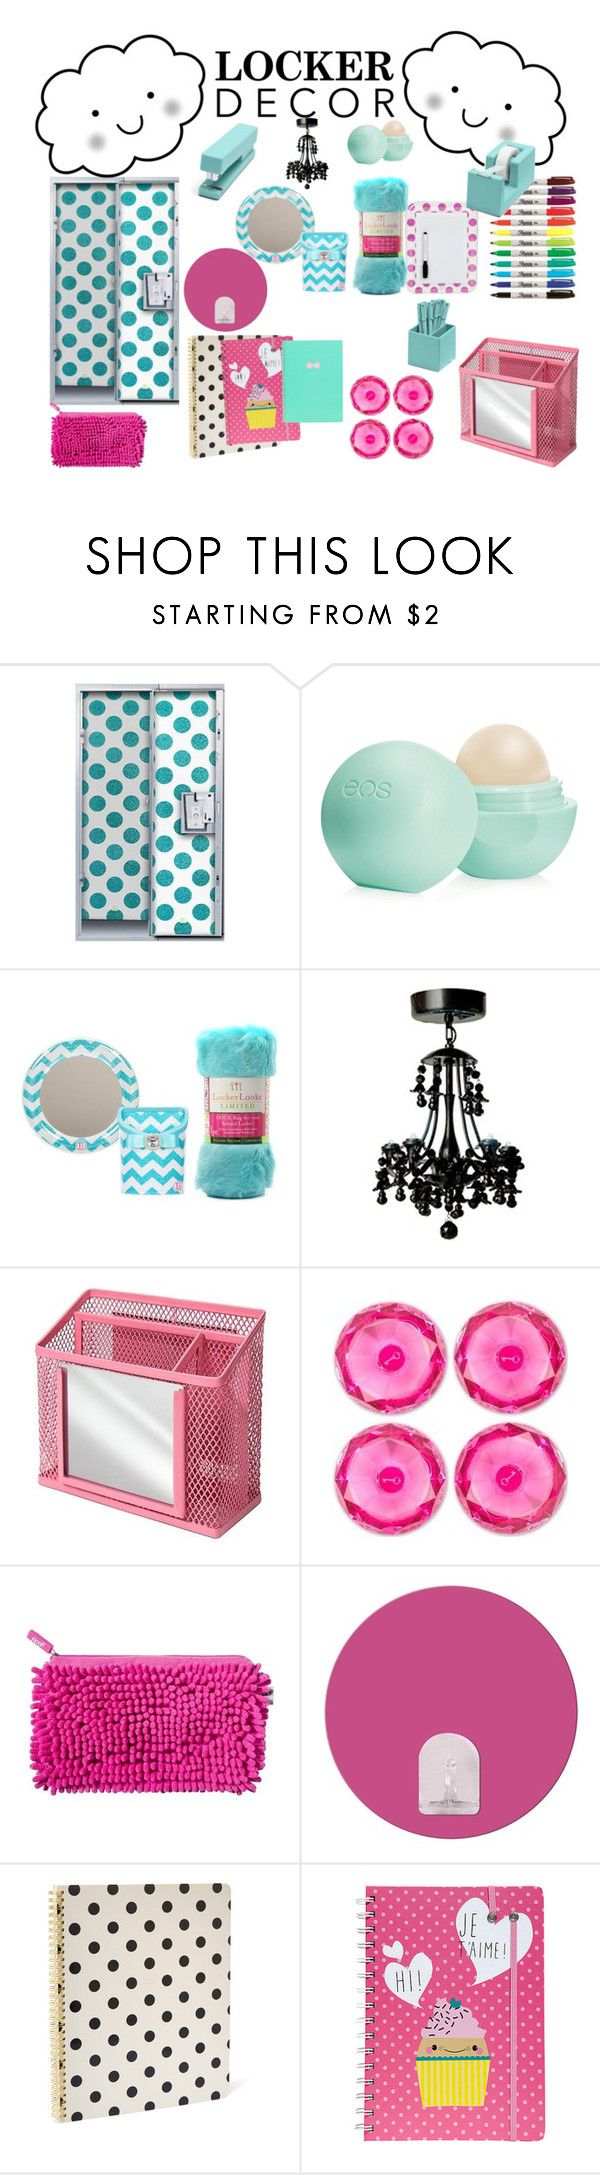 """Locker Decor!"" by sophiatyevs ❤ liked on Polyvore featuring interior, interiors, interior design, home, home decor, interior decorating, Eos, U Brands, Yoobi and RoomMates Decor"